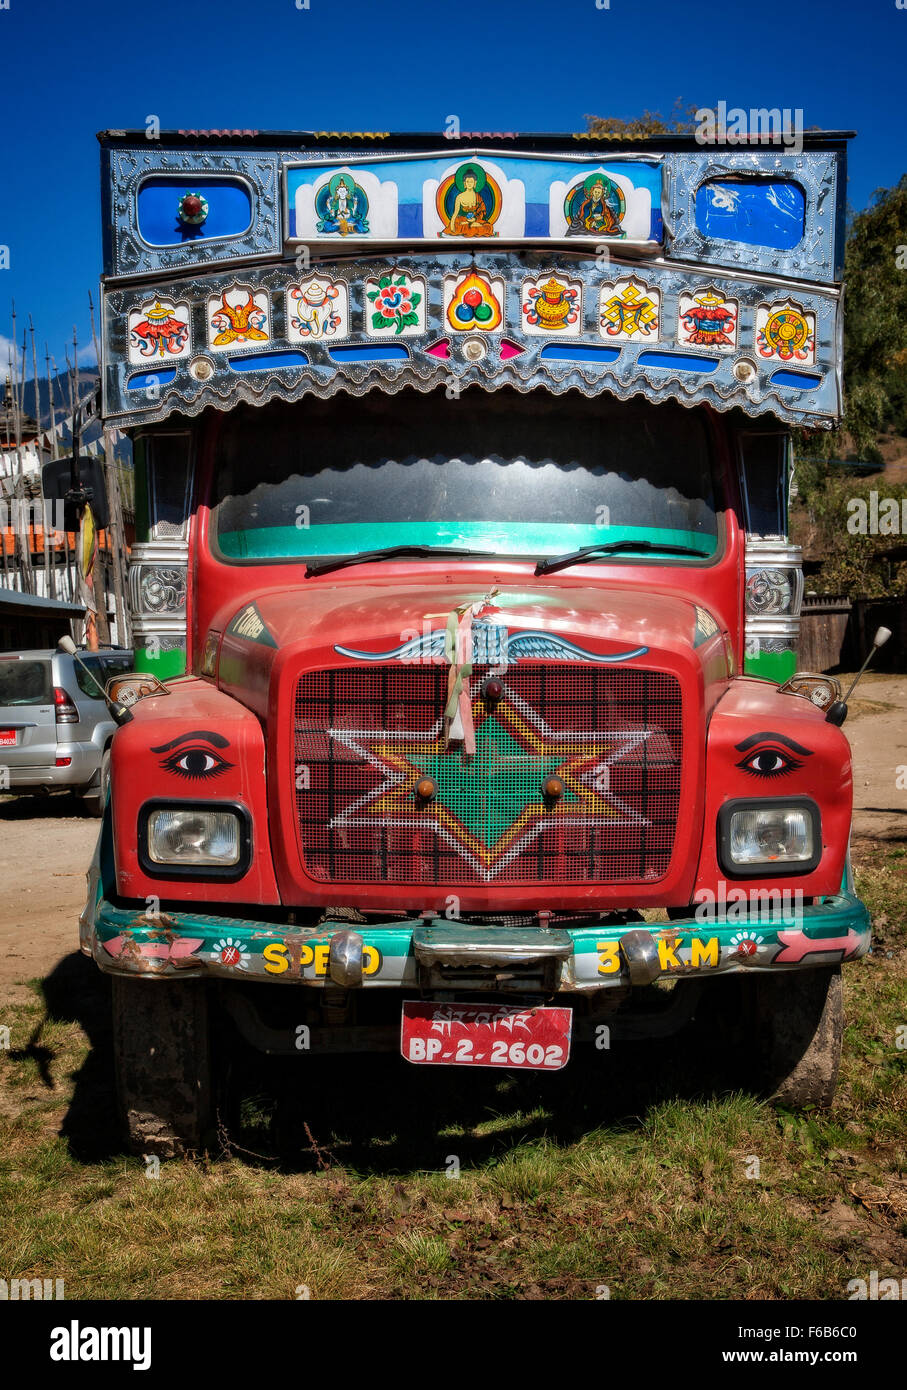 A commercial truck in Bhutan. - Stock Image